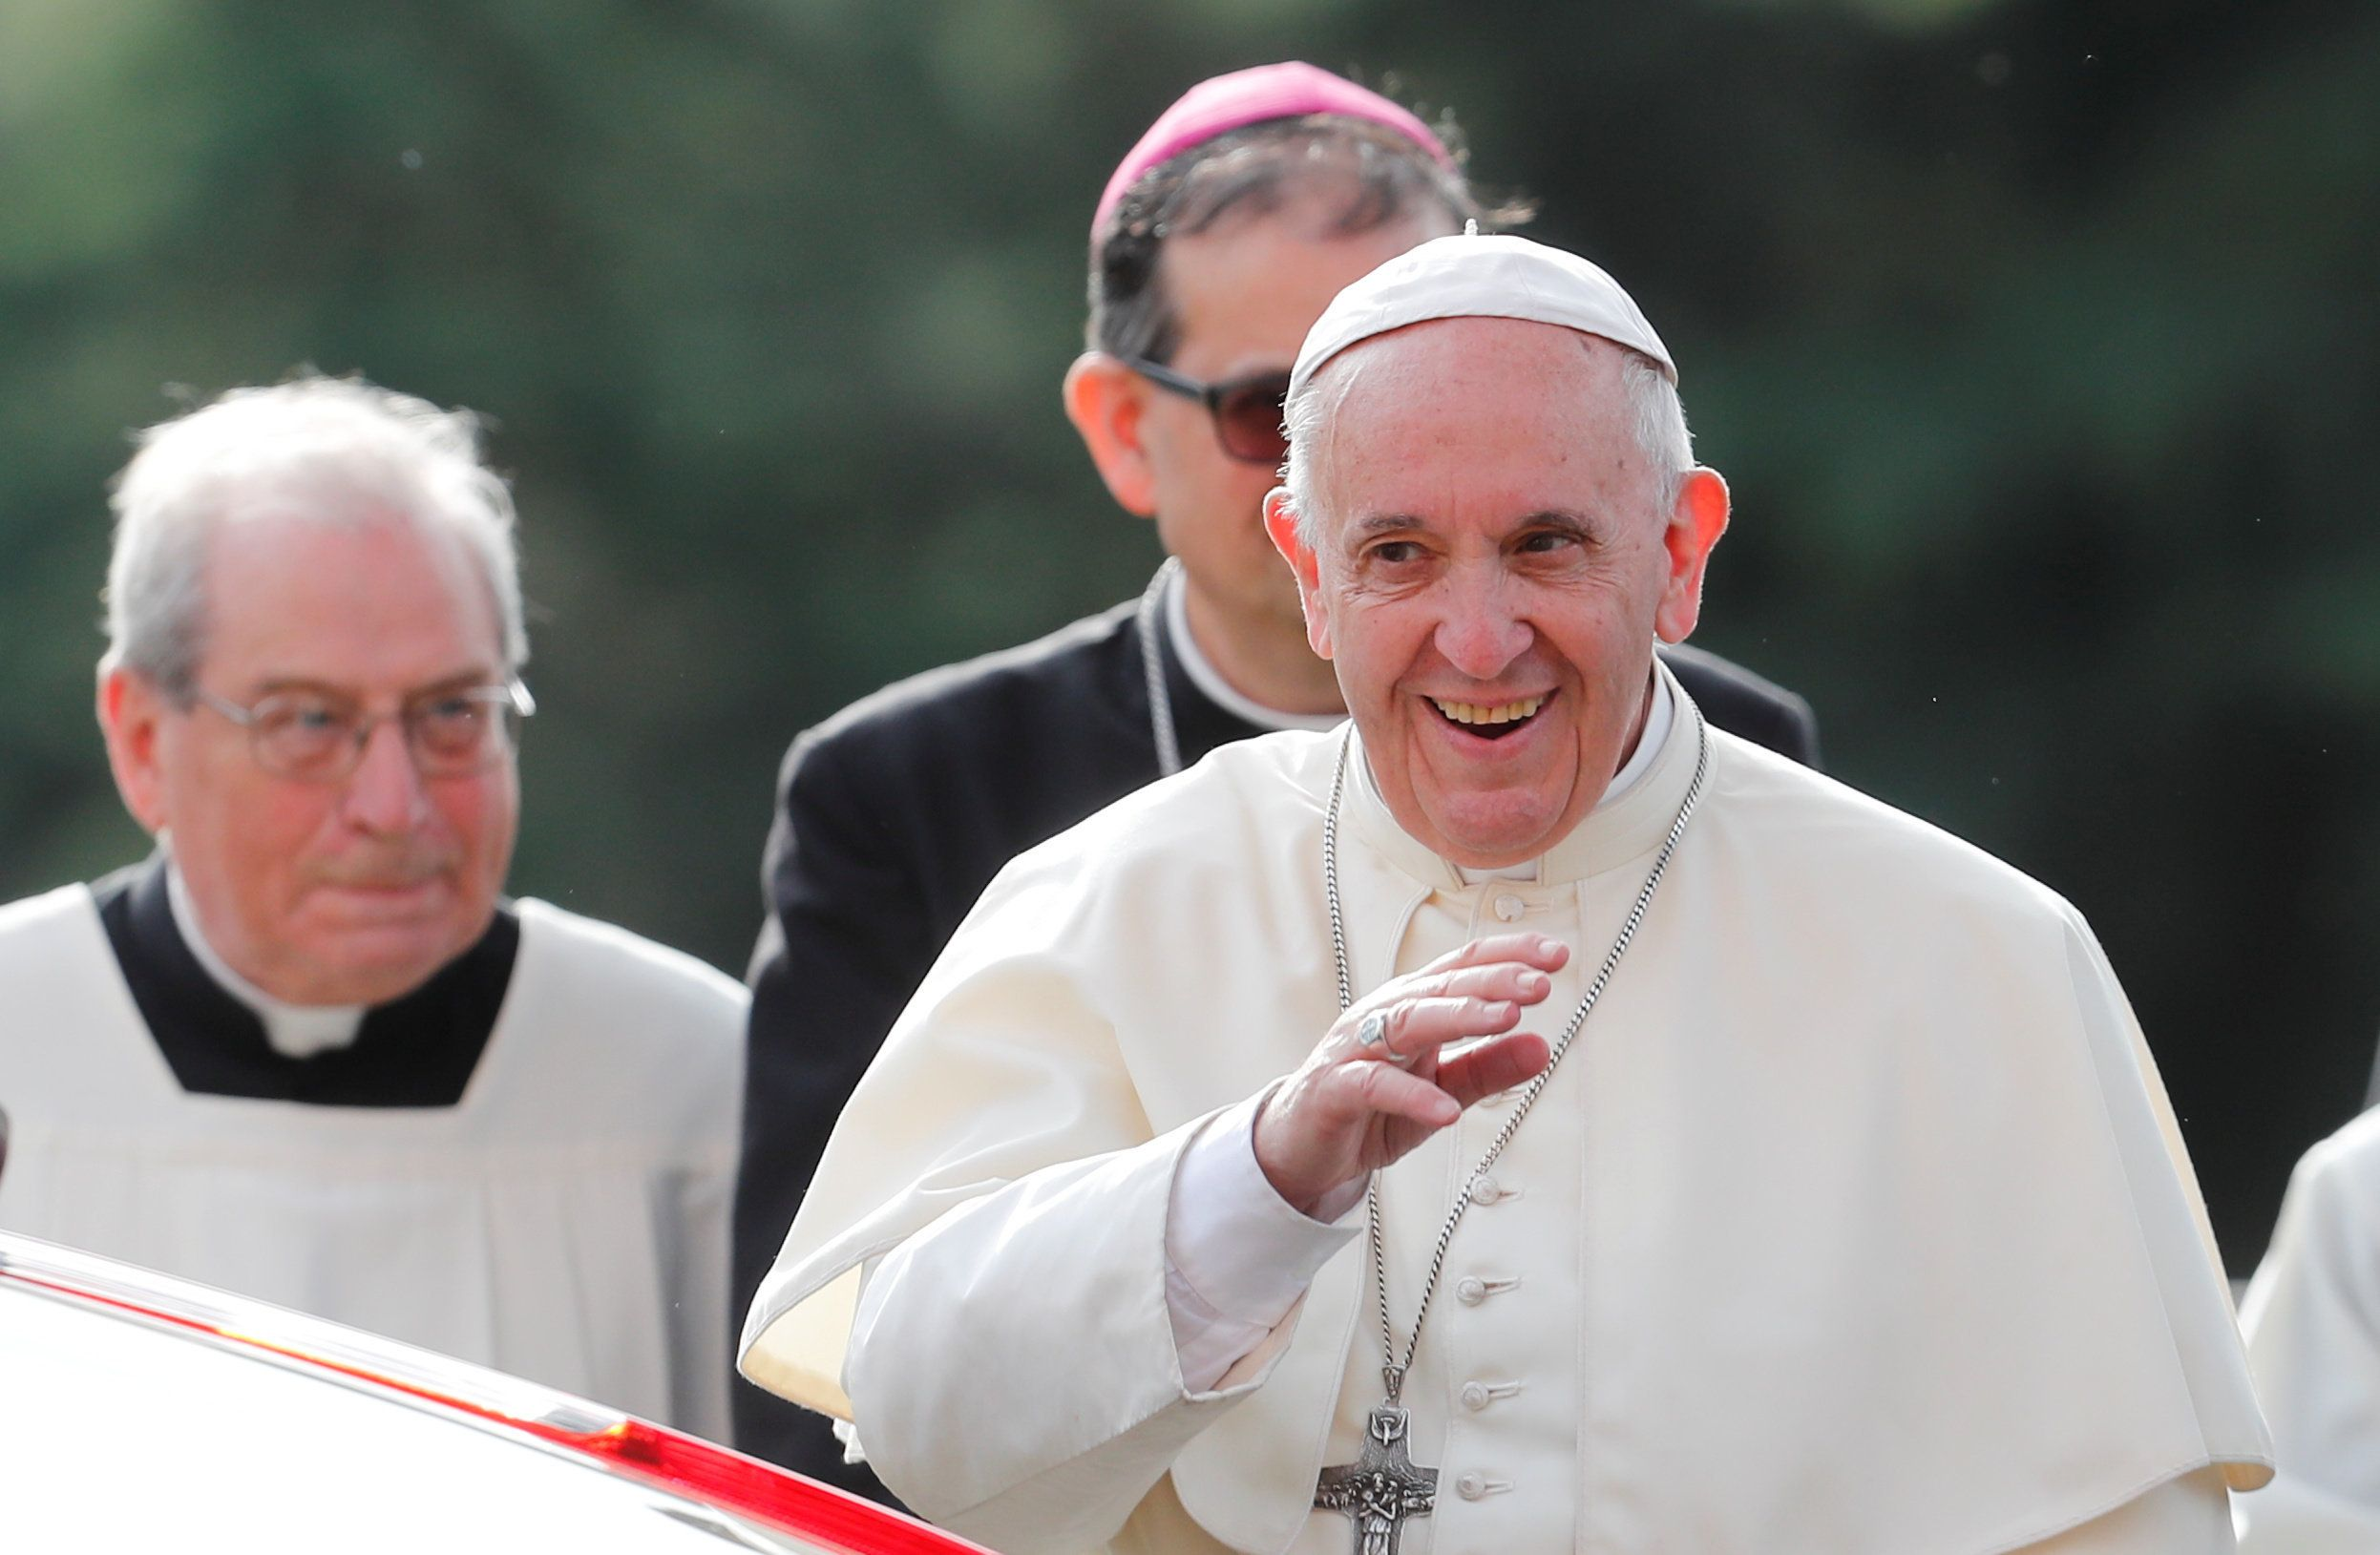 Pope Francis Reportedly Told a Gay Man